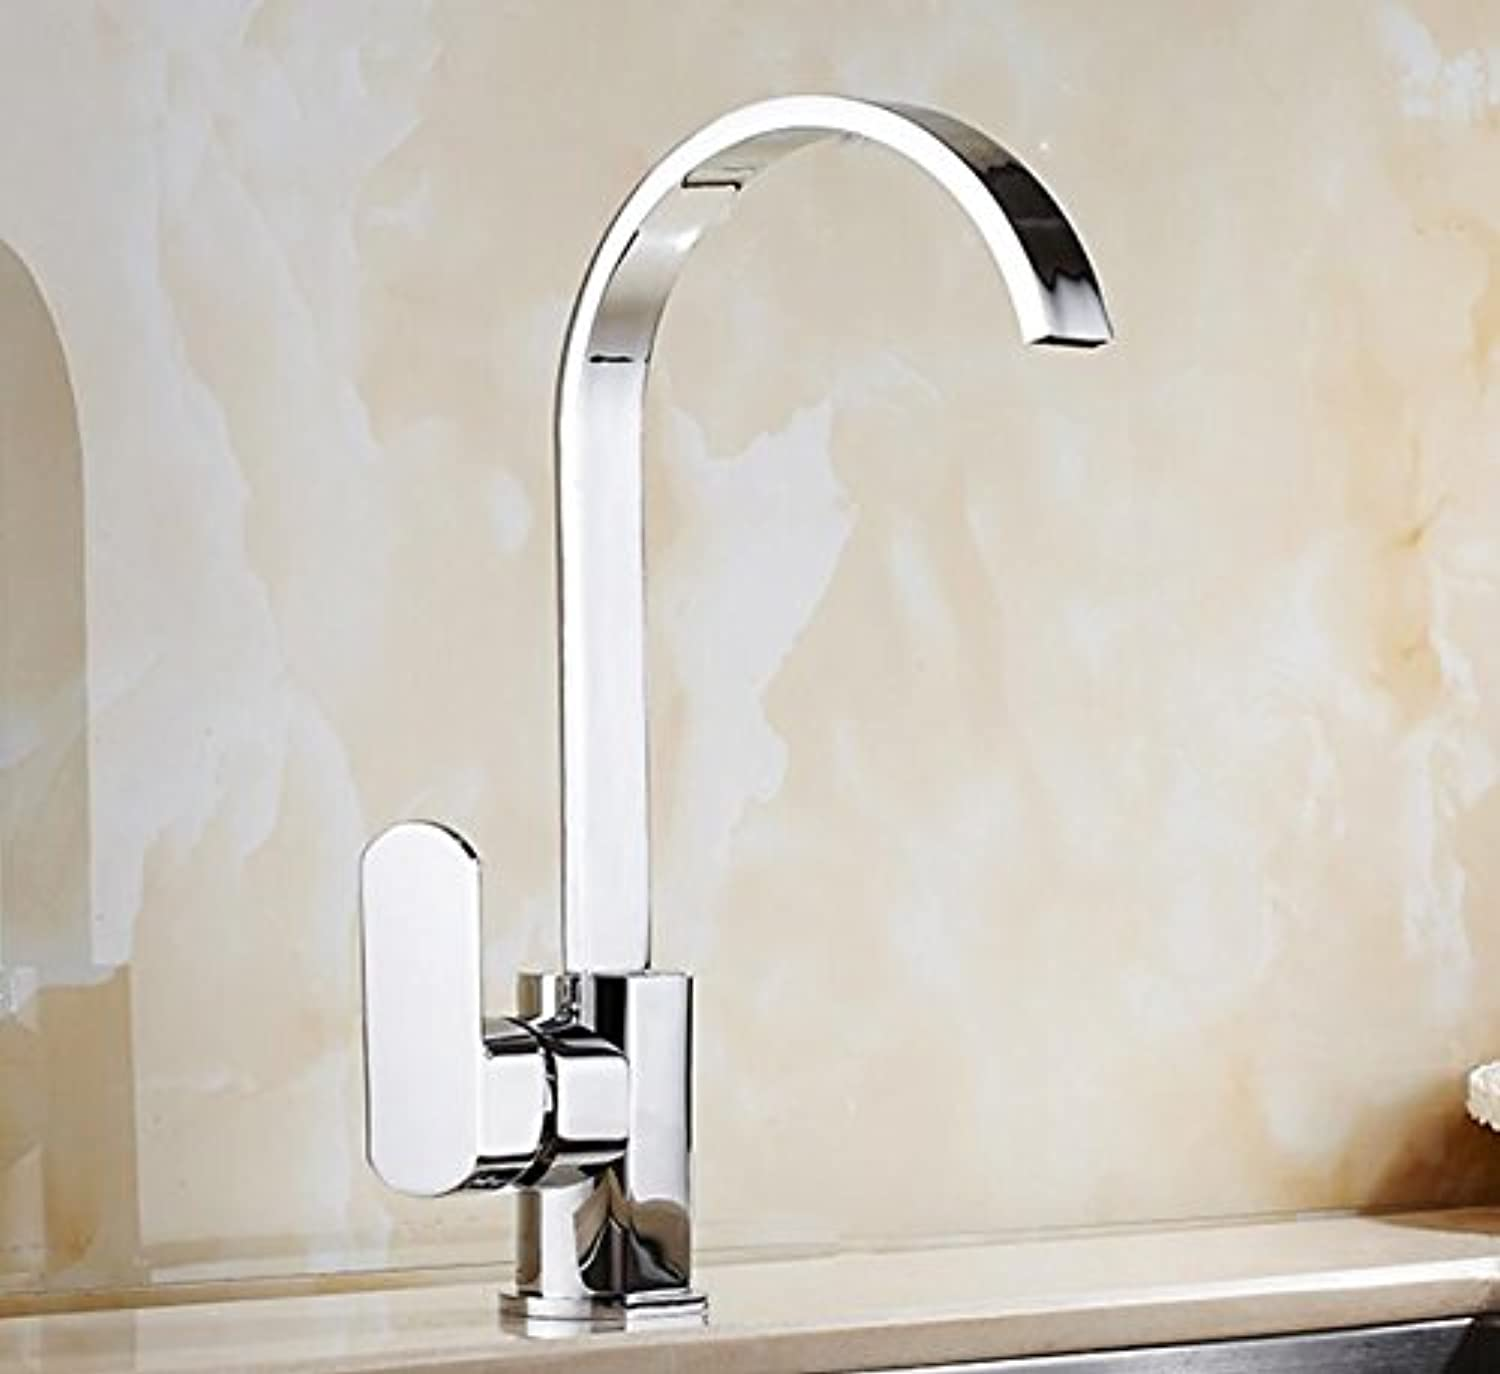 Mkkwp Bathroom Basin Mixer Tap Waterfall Water taps Faucet Vessel Mixer Brass Tap Kitchen Faucet